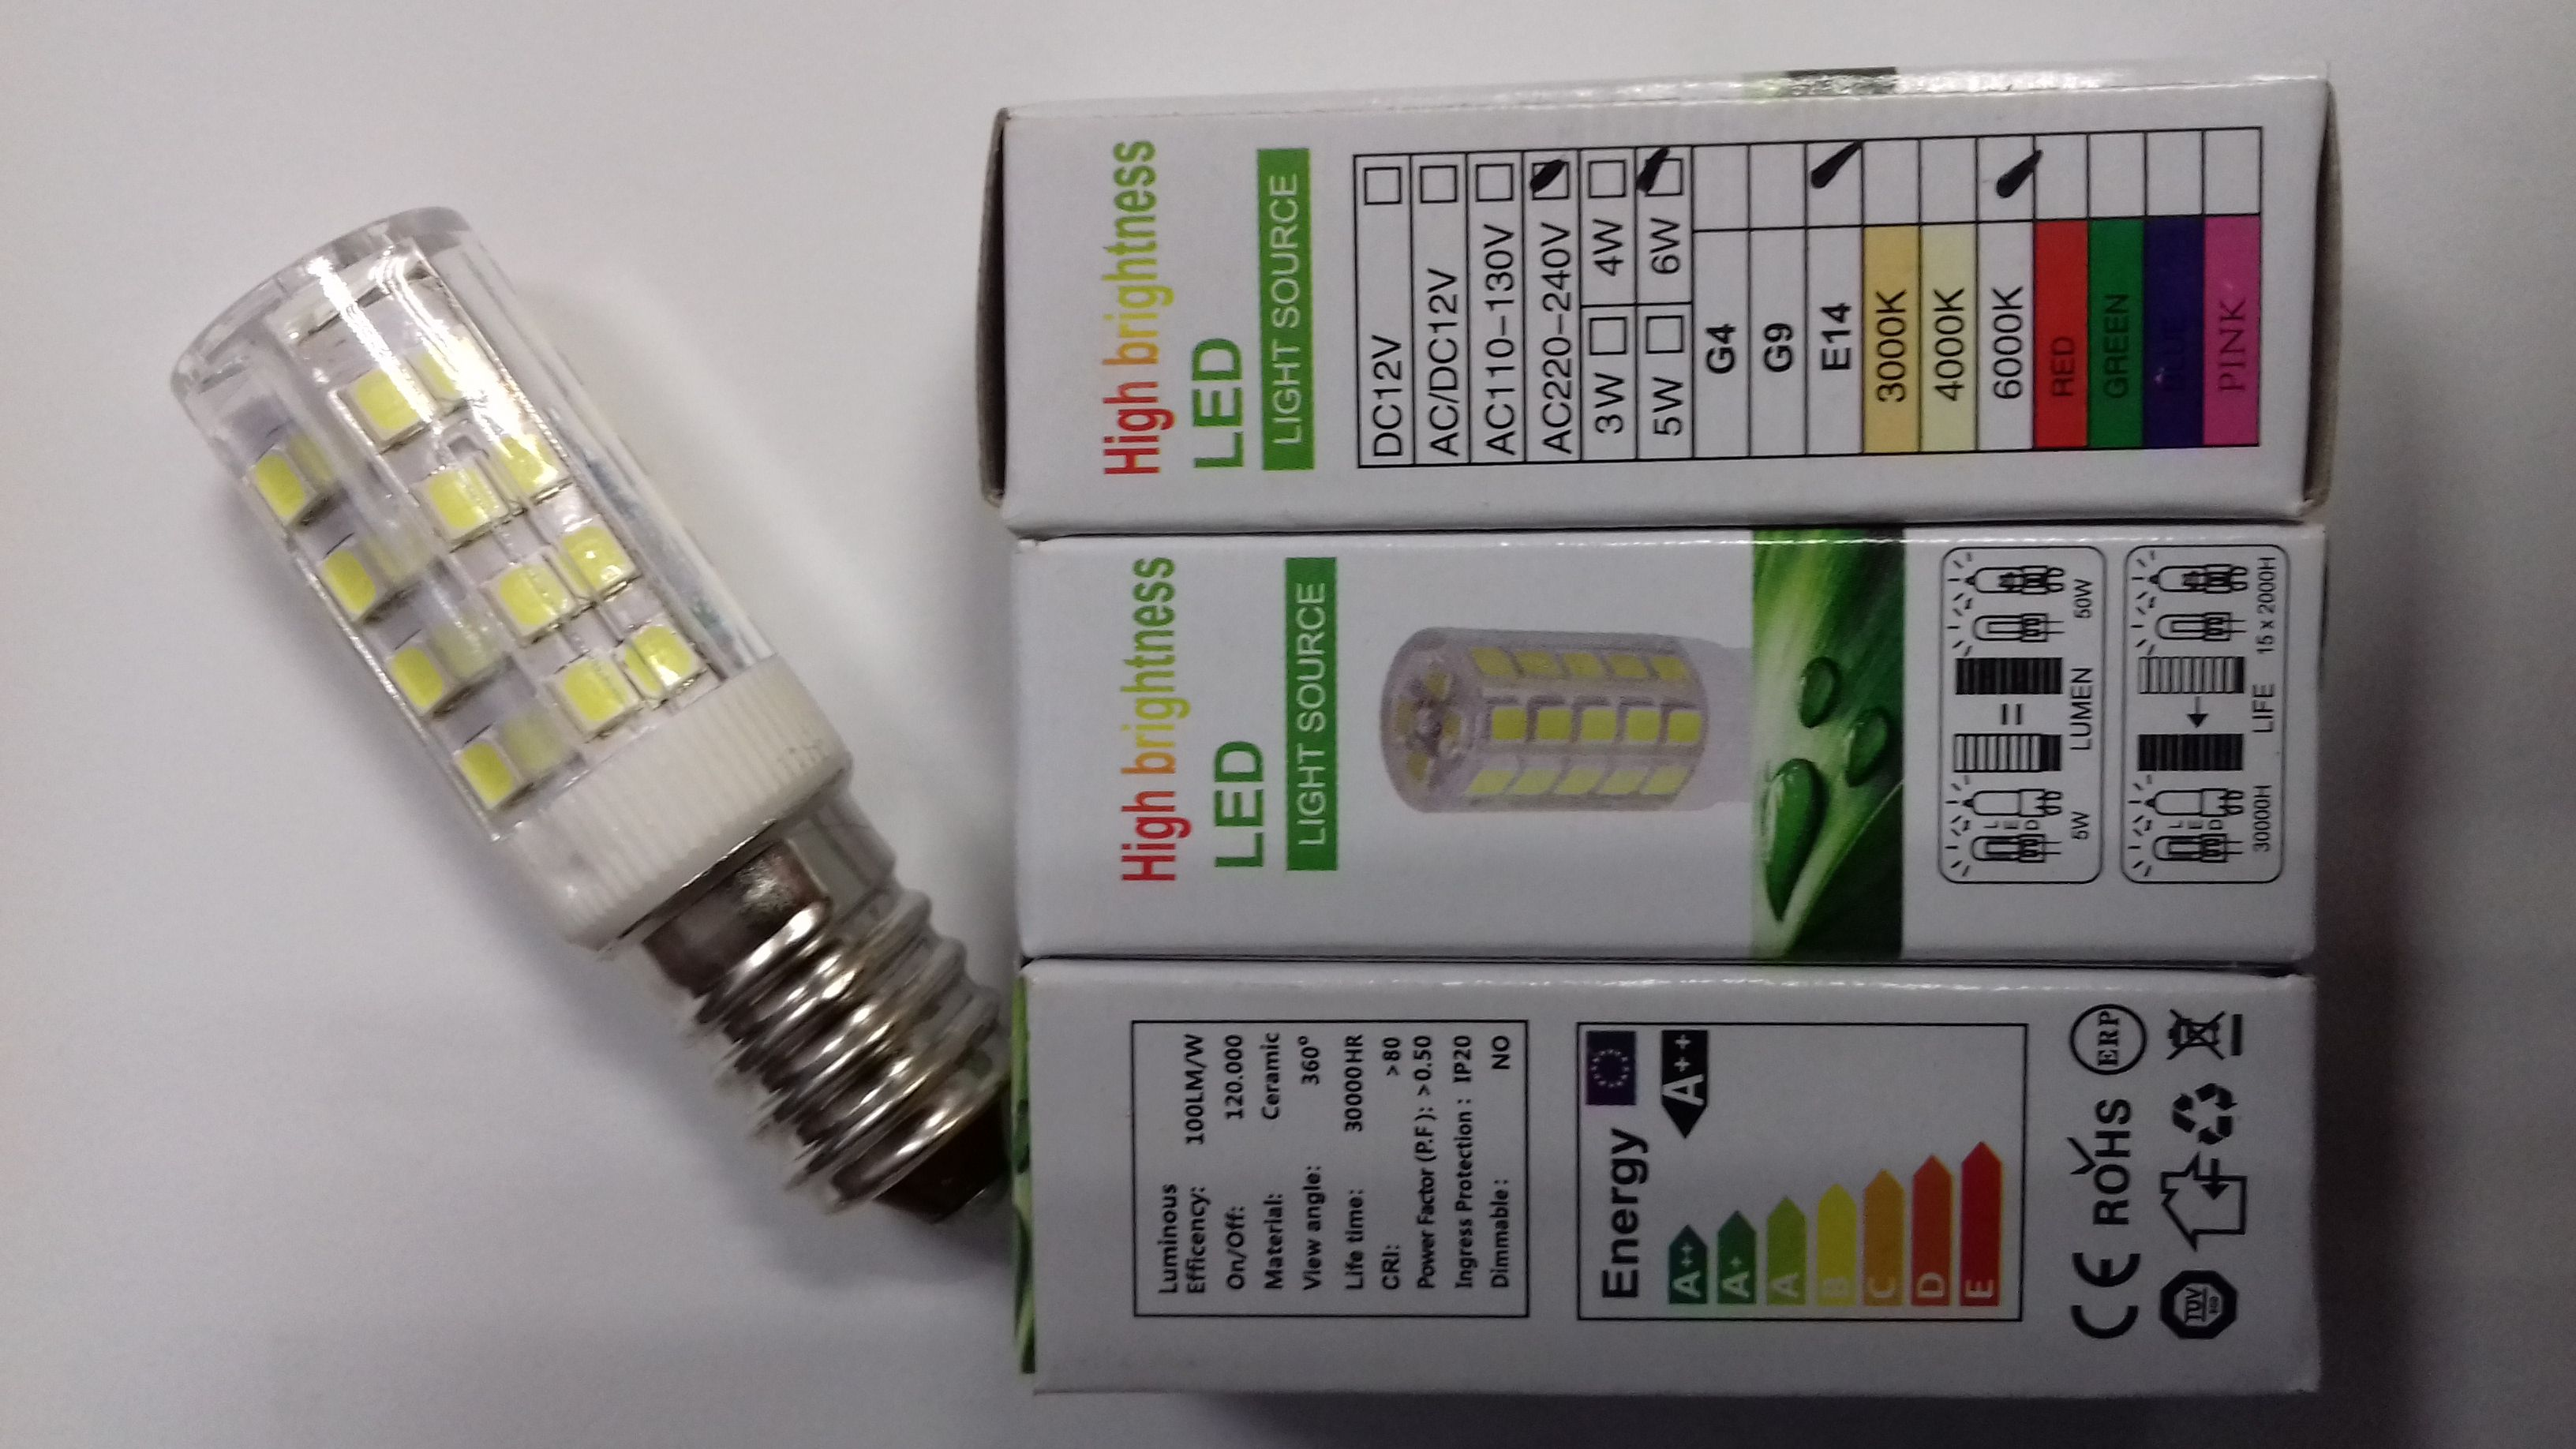 Žiarovka LED 230 V, 6 W so závitom